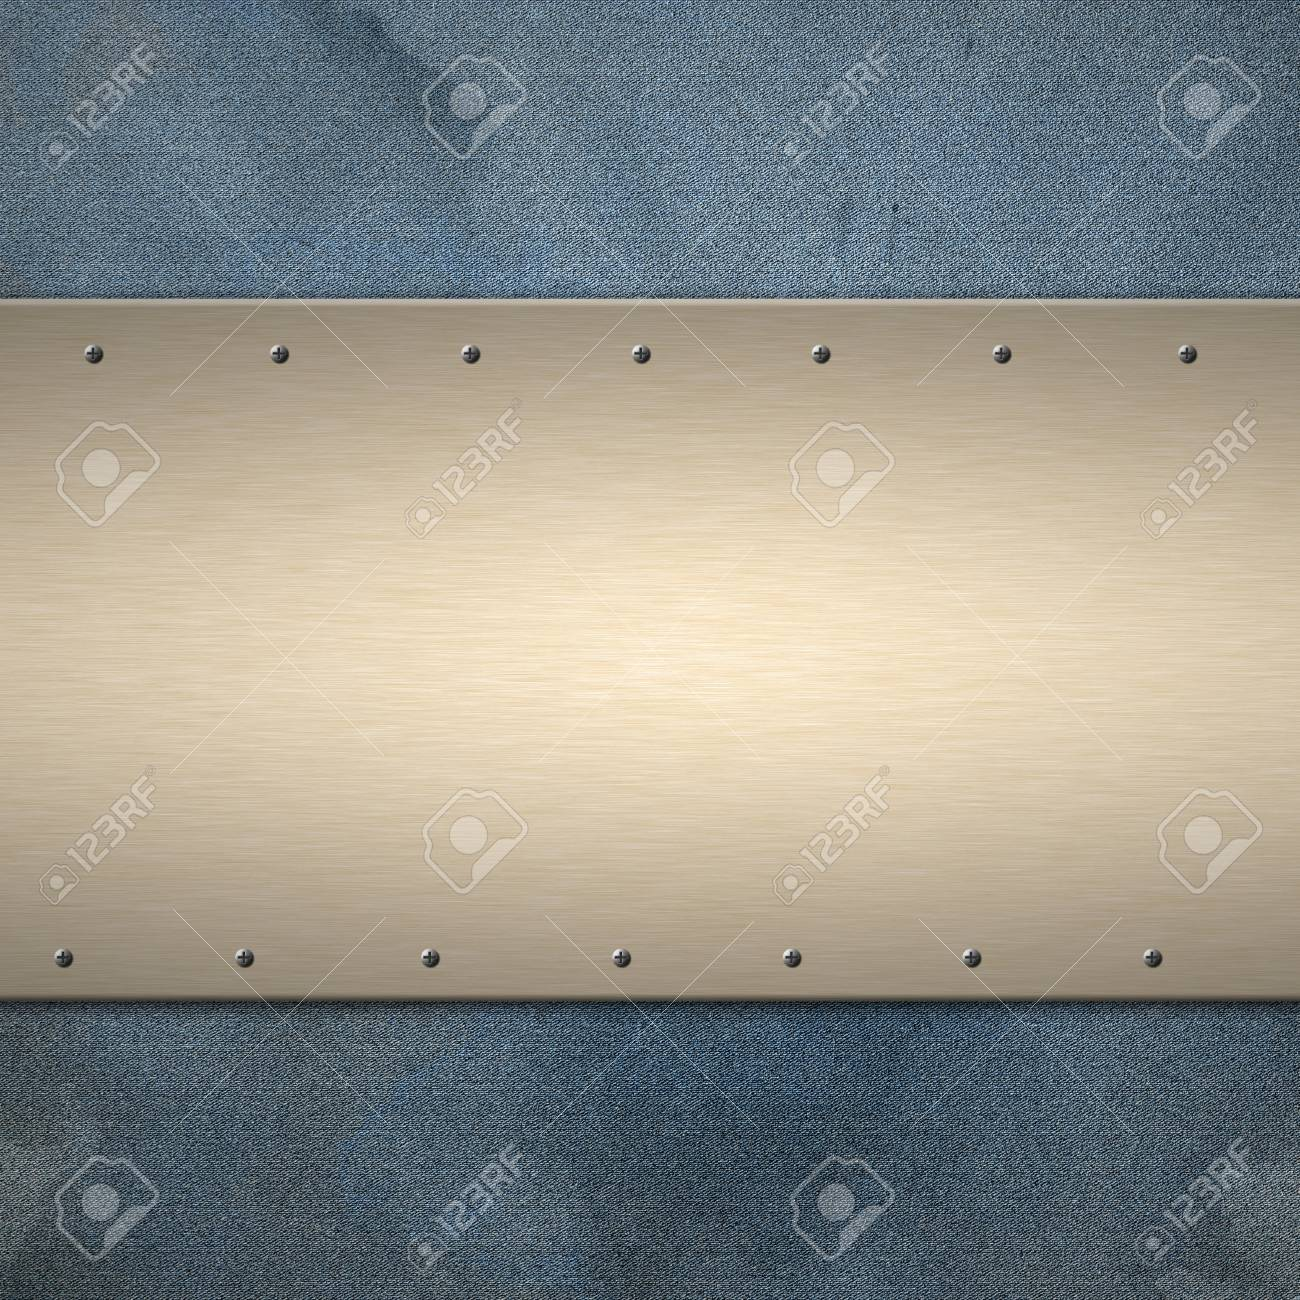 Metal textured background with copyspace. Stock Photo - 20708941